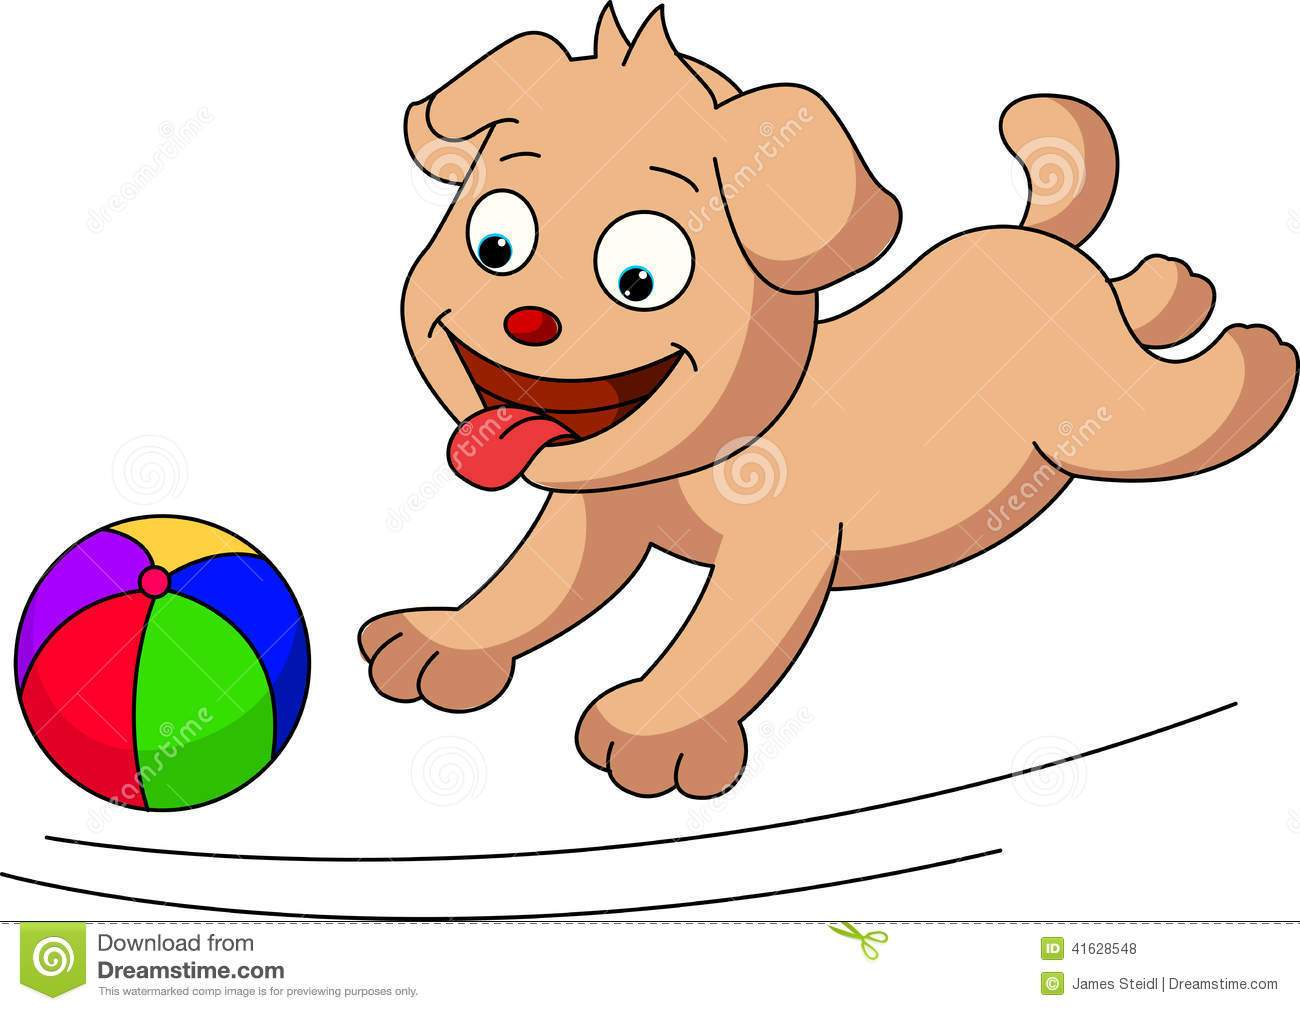 Dog playing with ball clipart 8 » Clipart Portal.